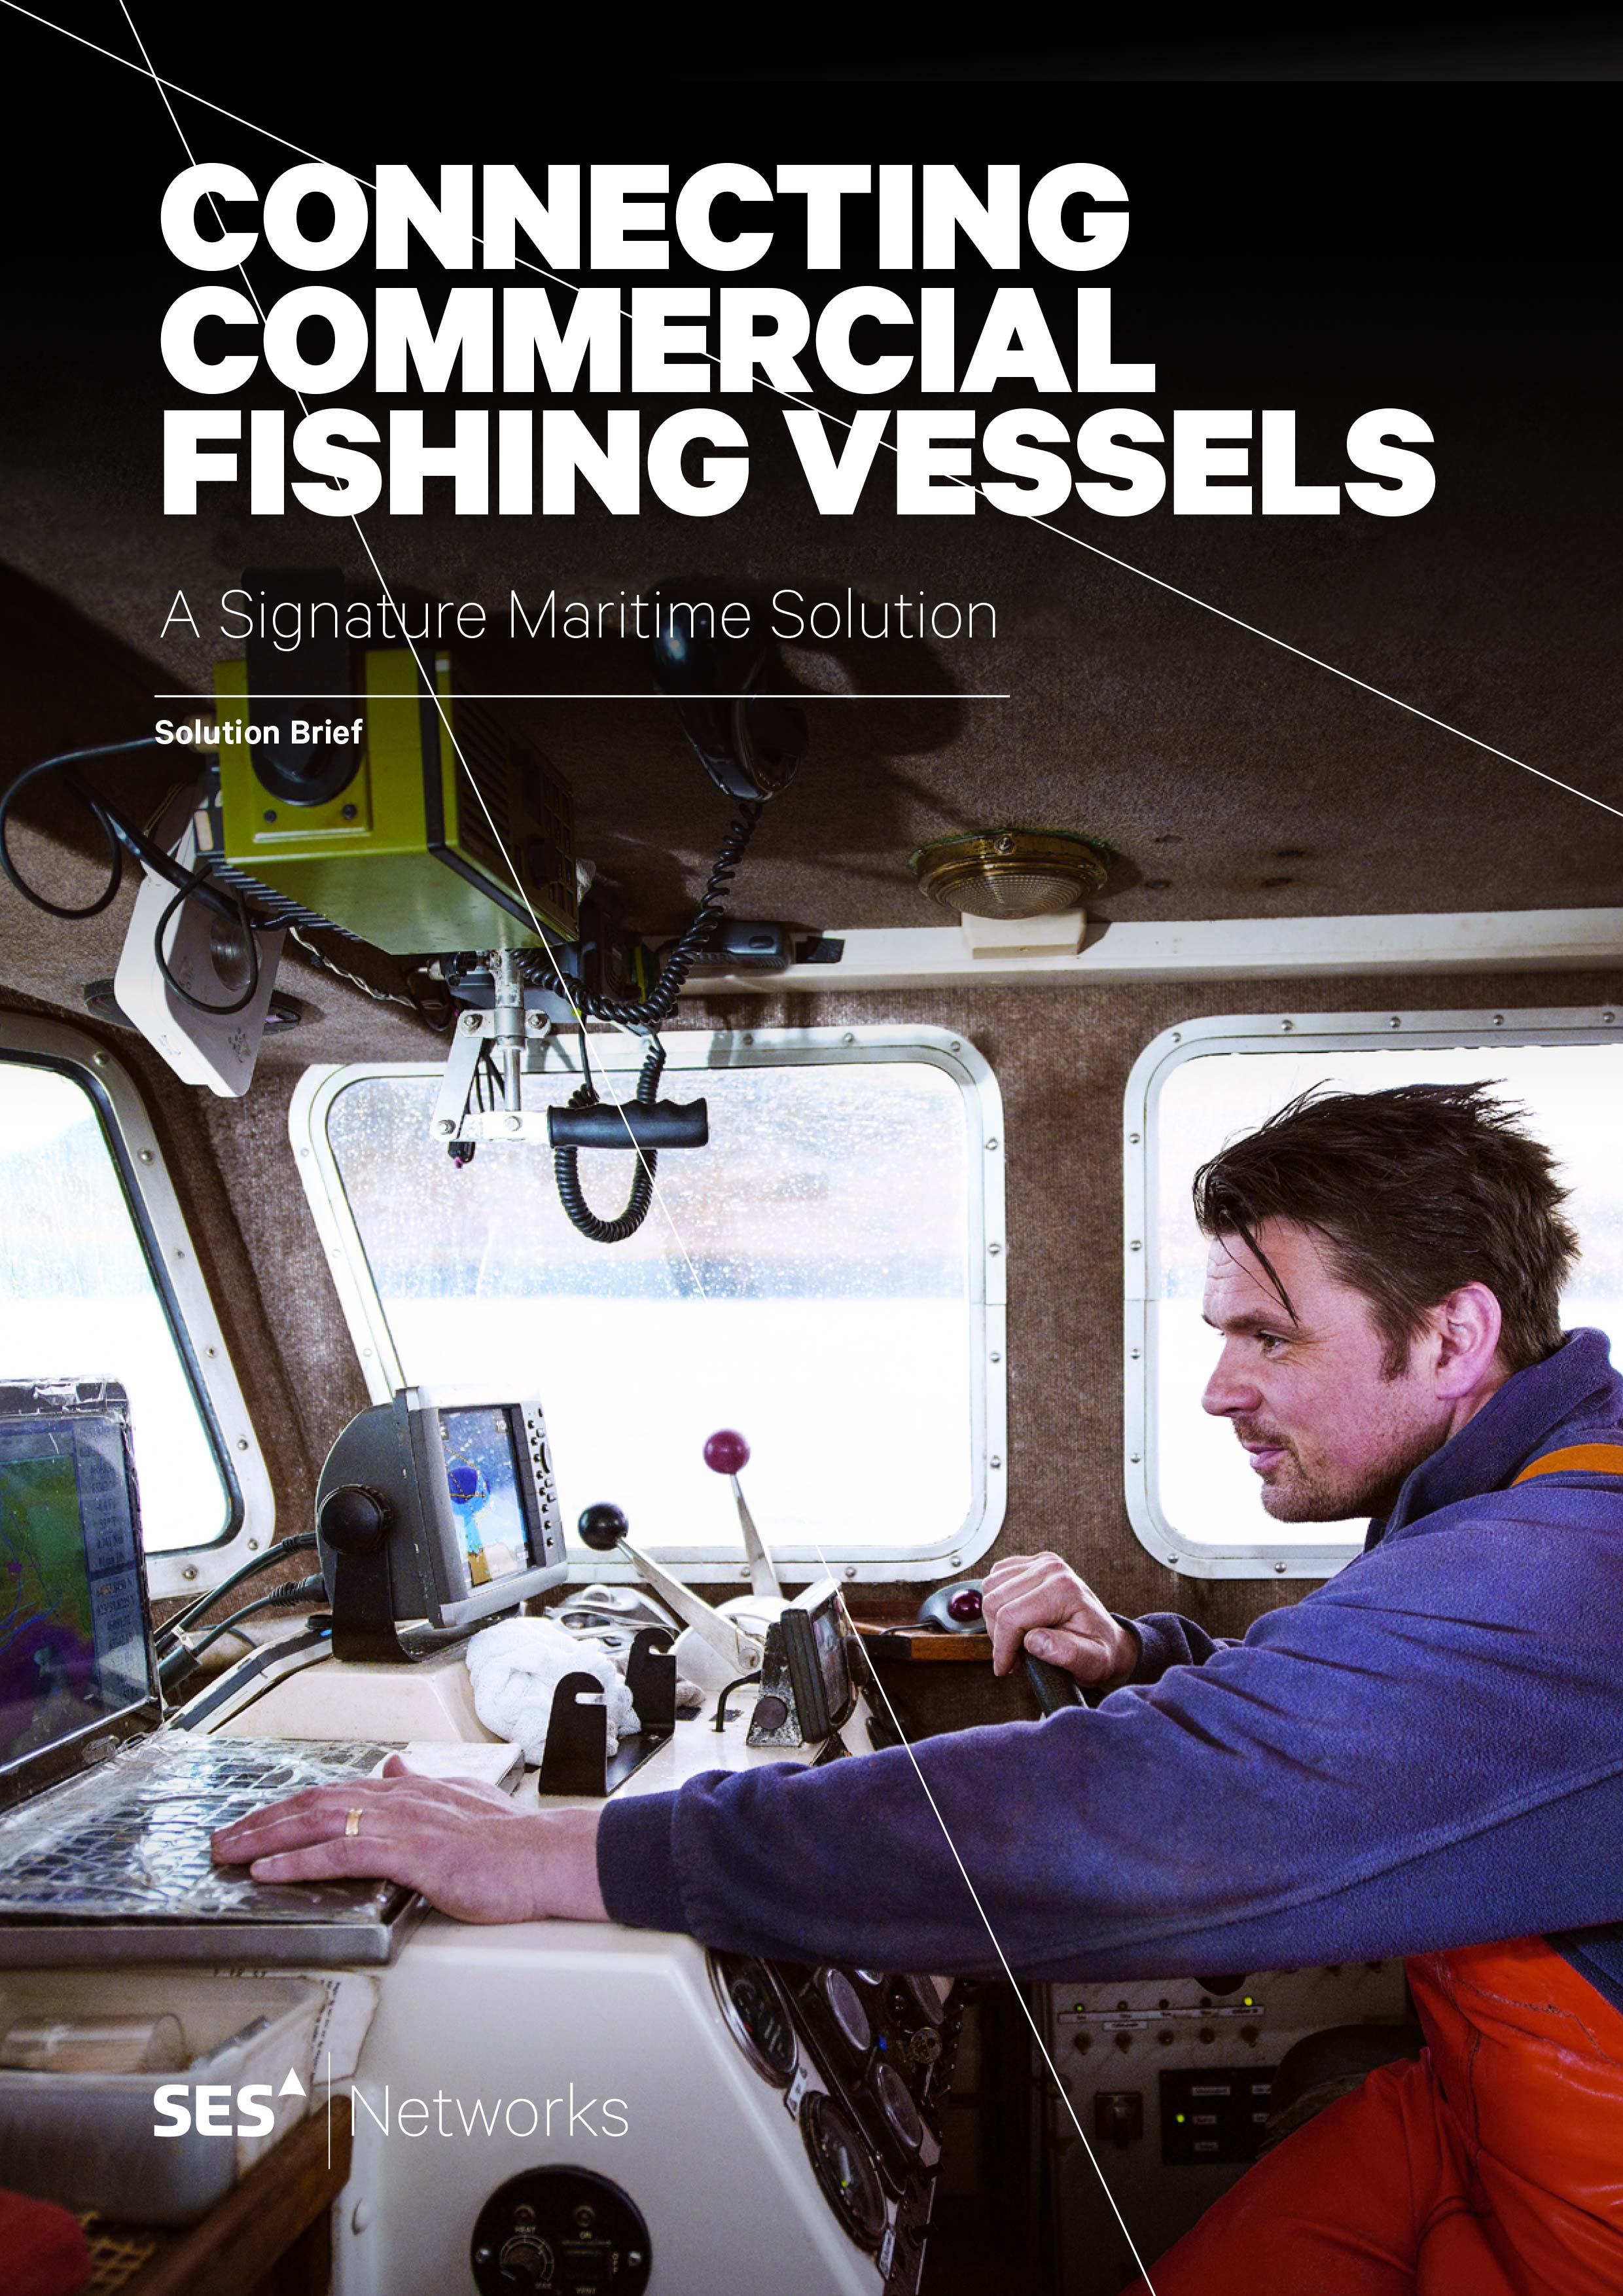 SES_Small_Vessels_solution_brief_cover_image